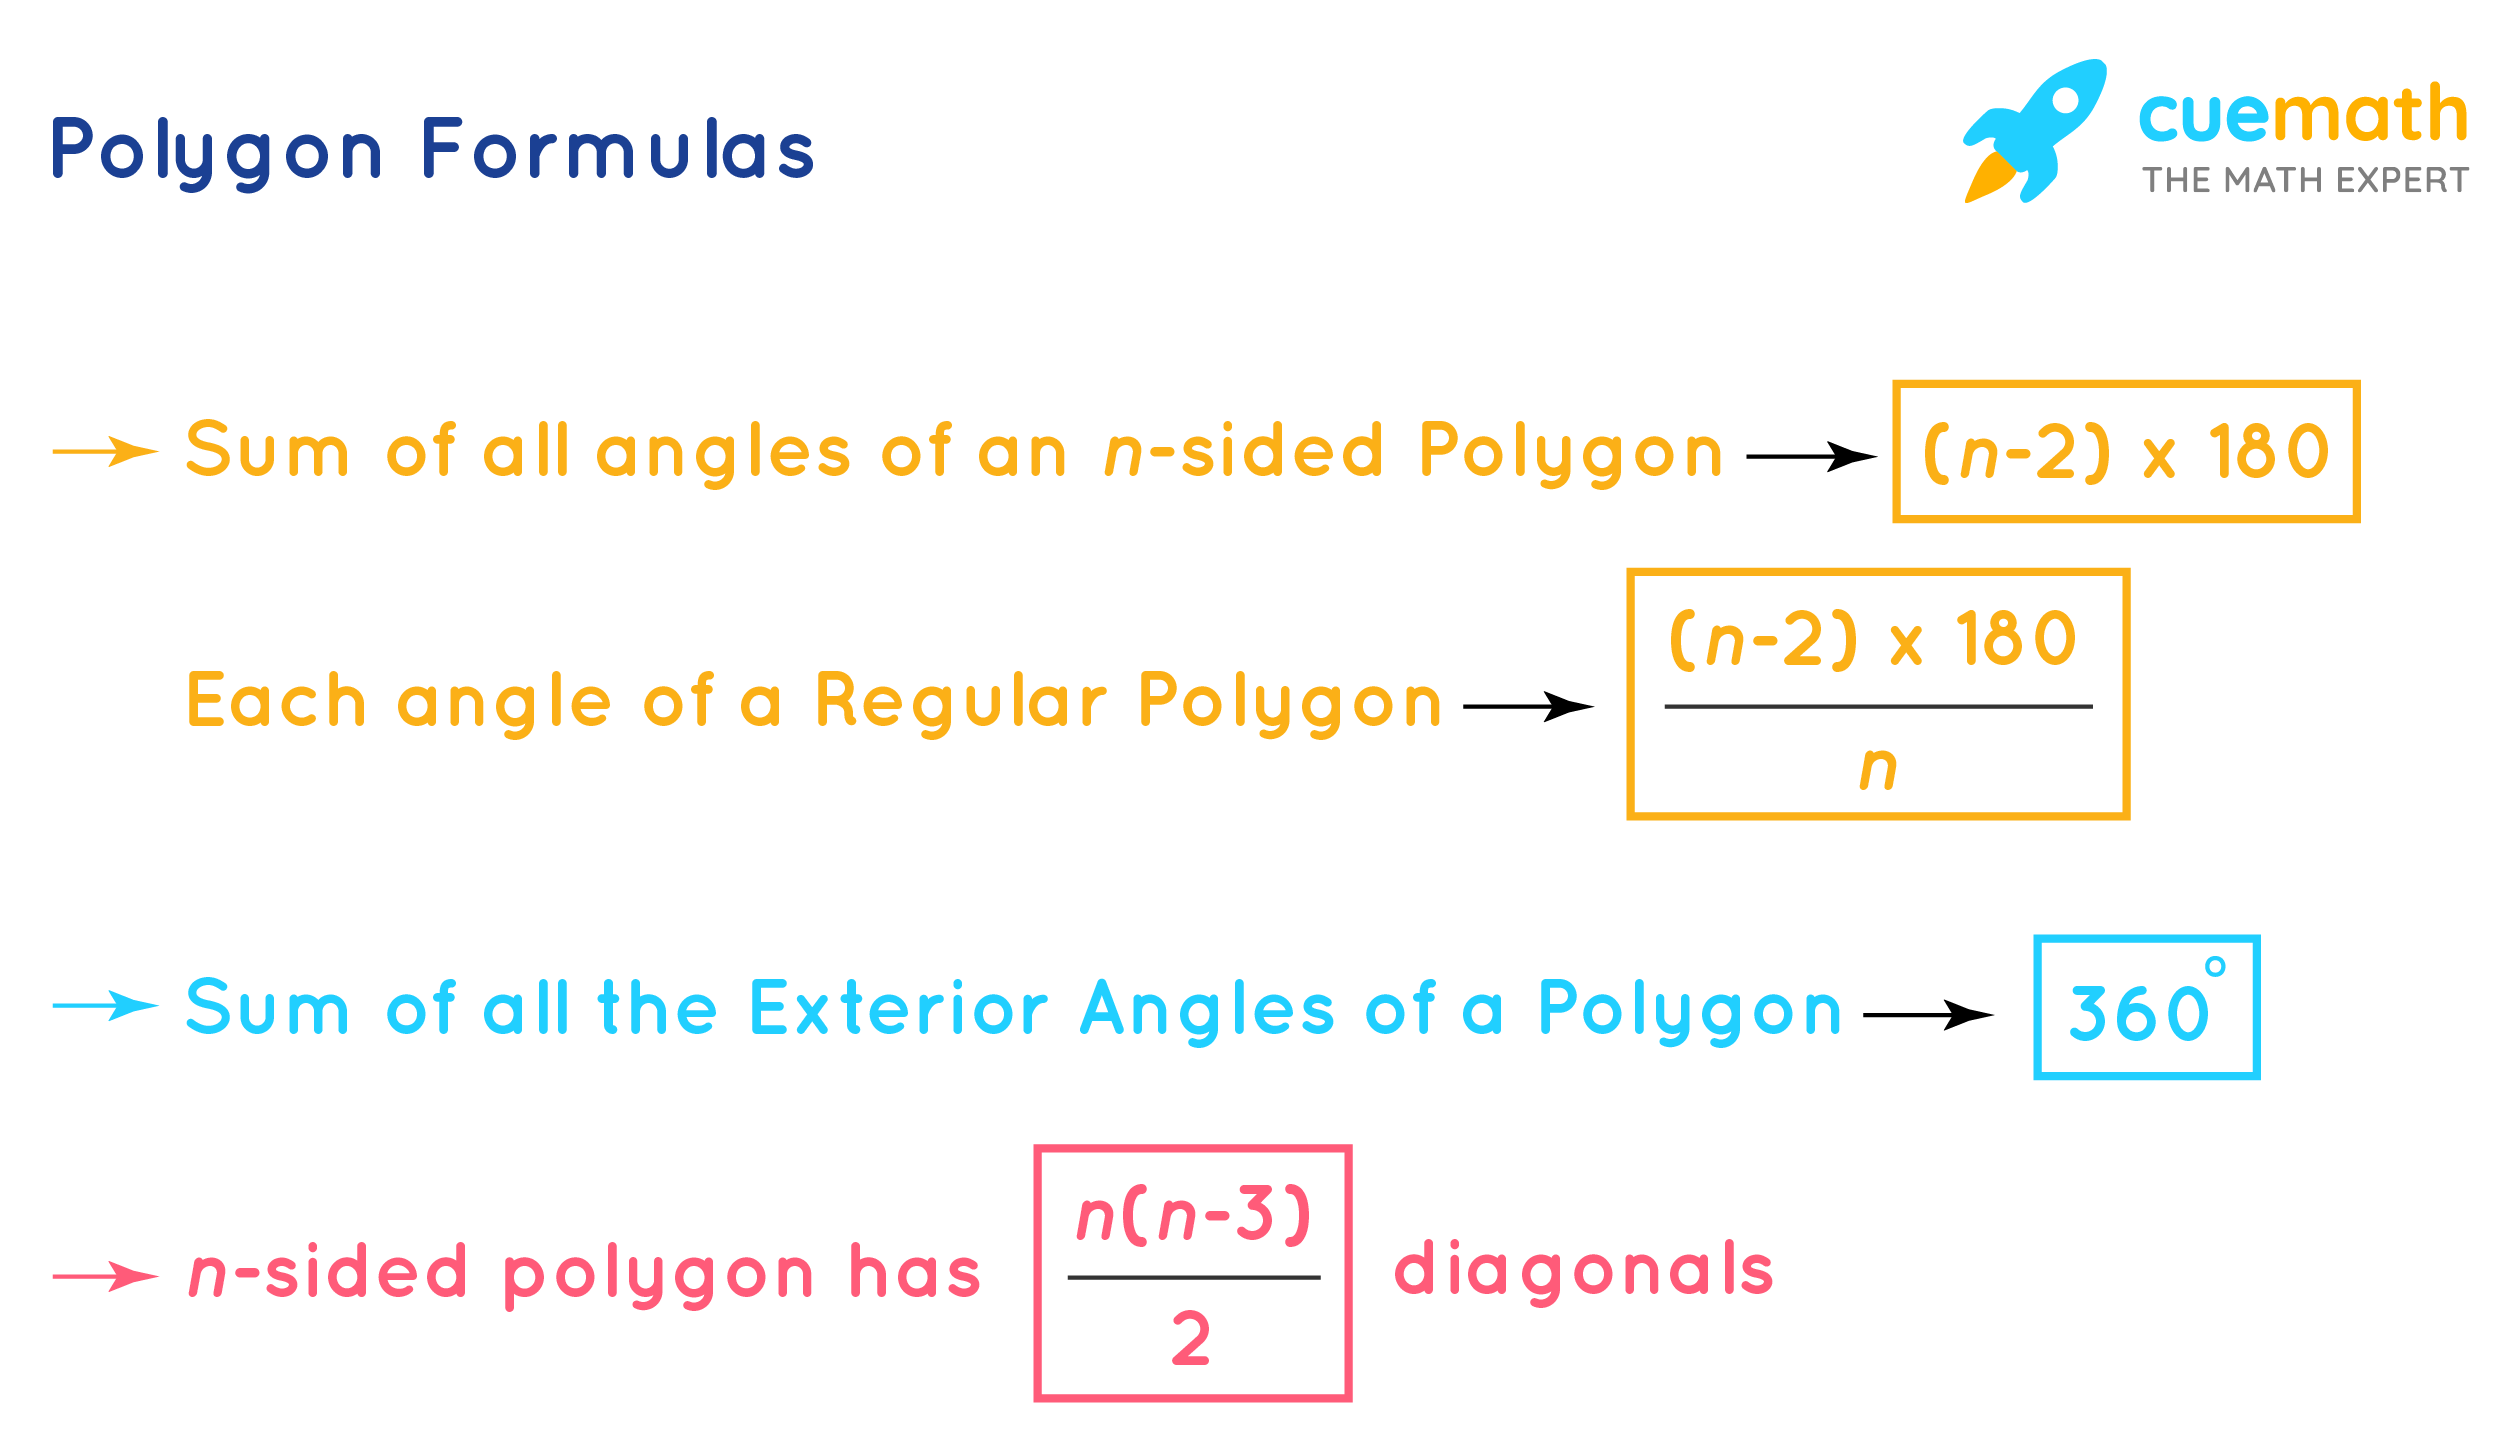 Polygon Formulas